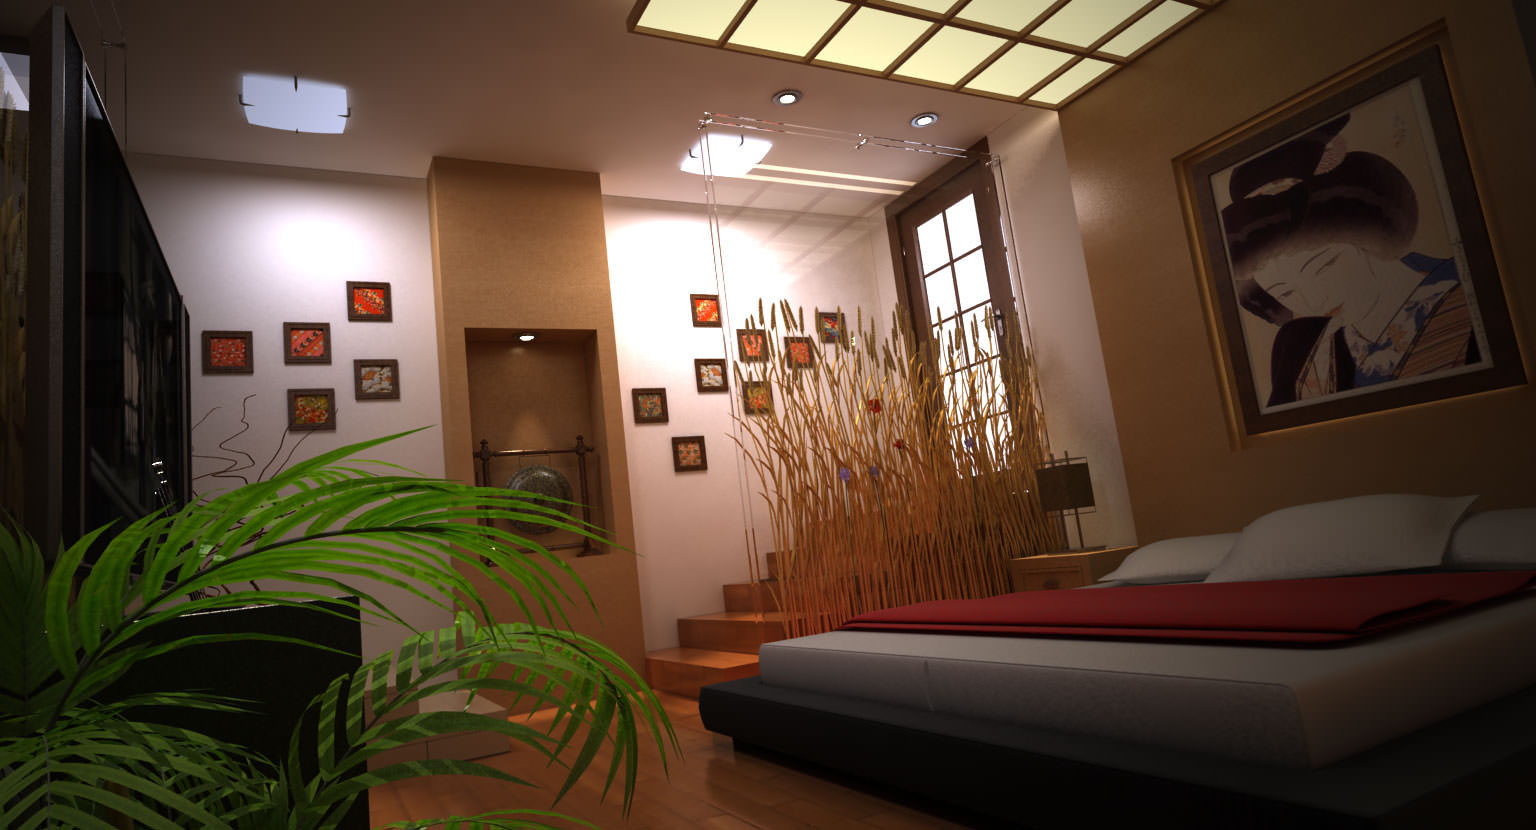 modern japanese bedroom 3d model max cgtrader com 12434 | modern japanese bedroom 3d model max f8fb1df1 2e18 4ea4 a8e3 c893478411af